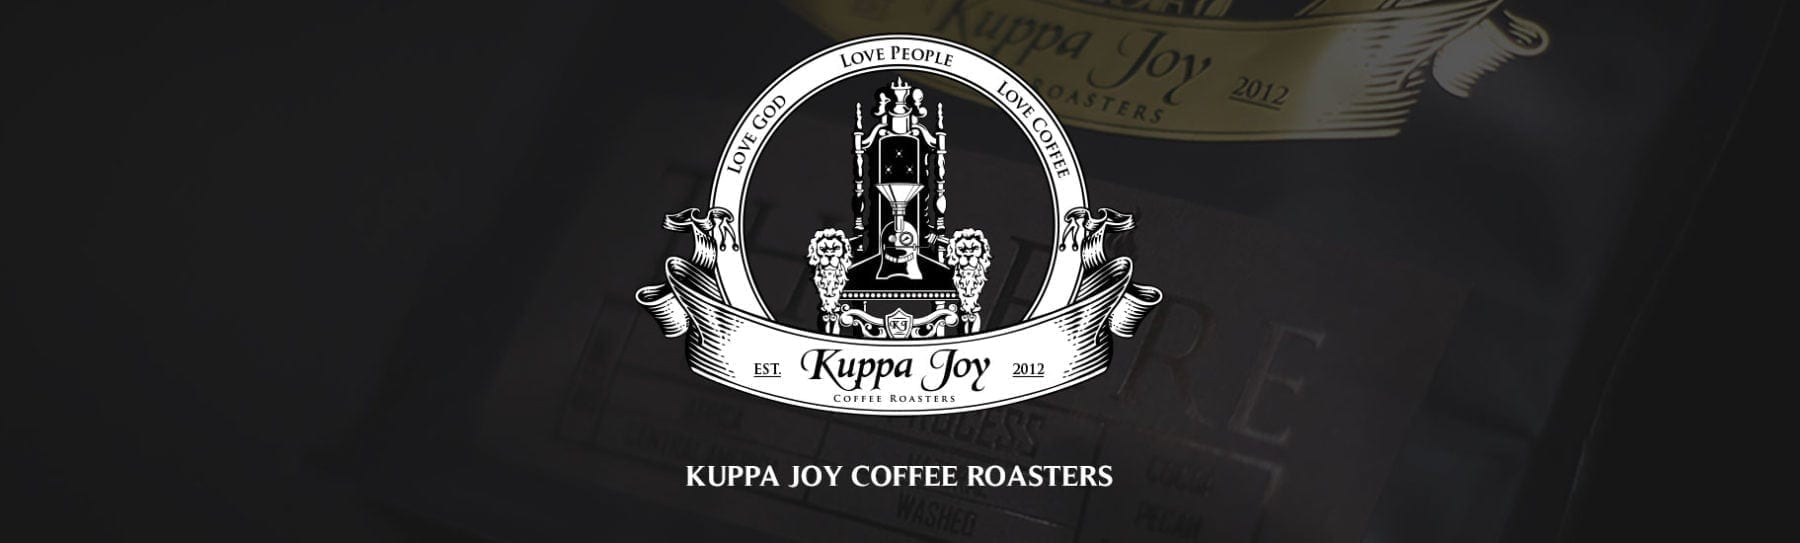 kj-coffee-roaster